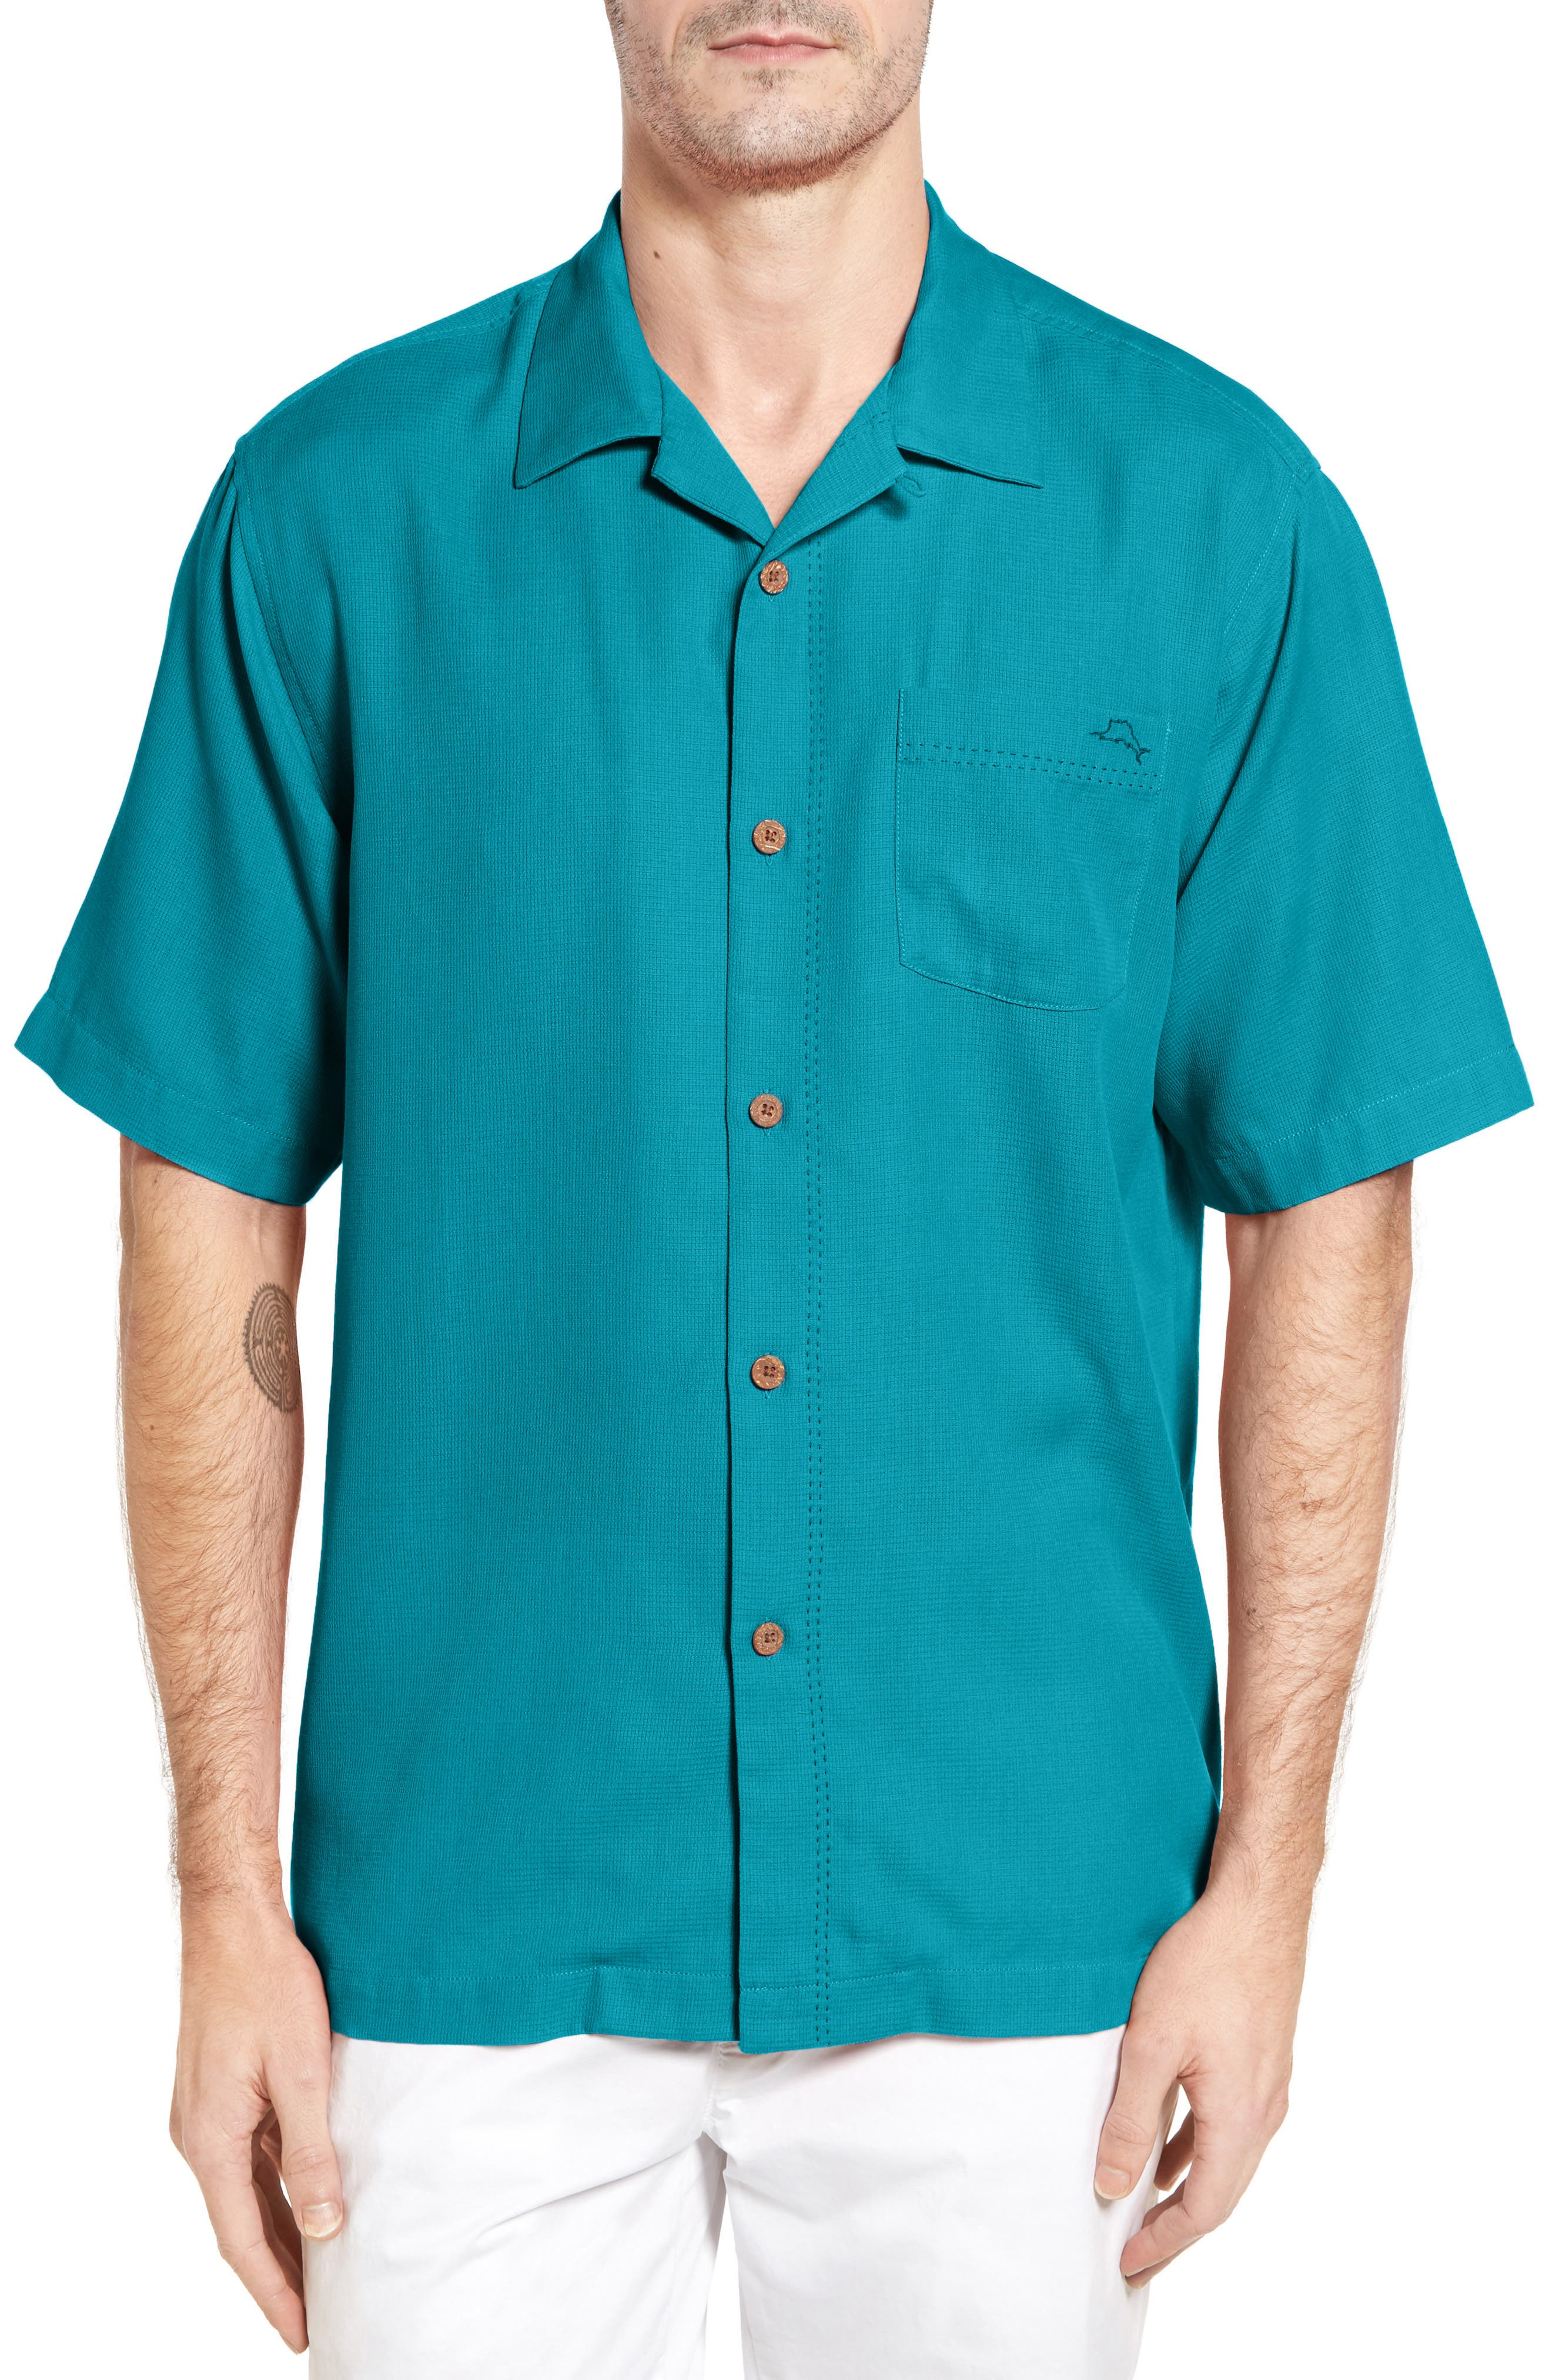 Royal Bermuda Standard Fit Silk Blend Camp Shirt,                             Main thumbnail 1, color,                             Riviera Azure